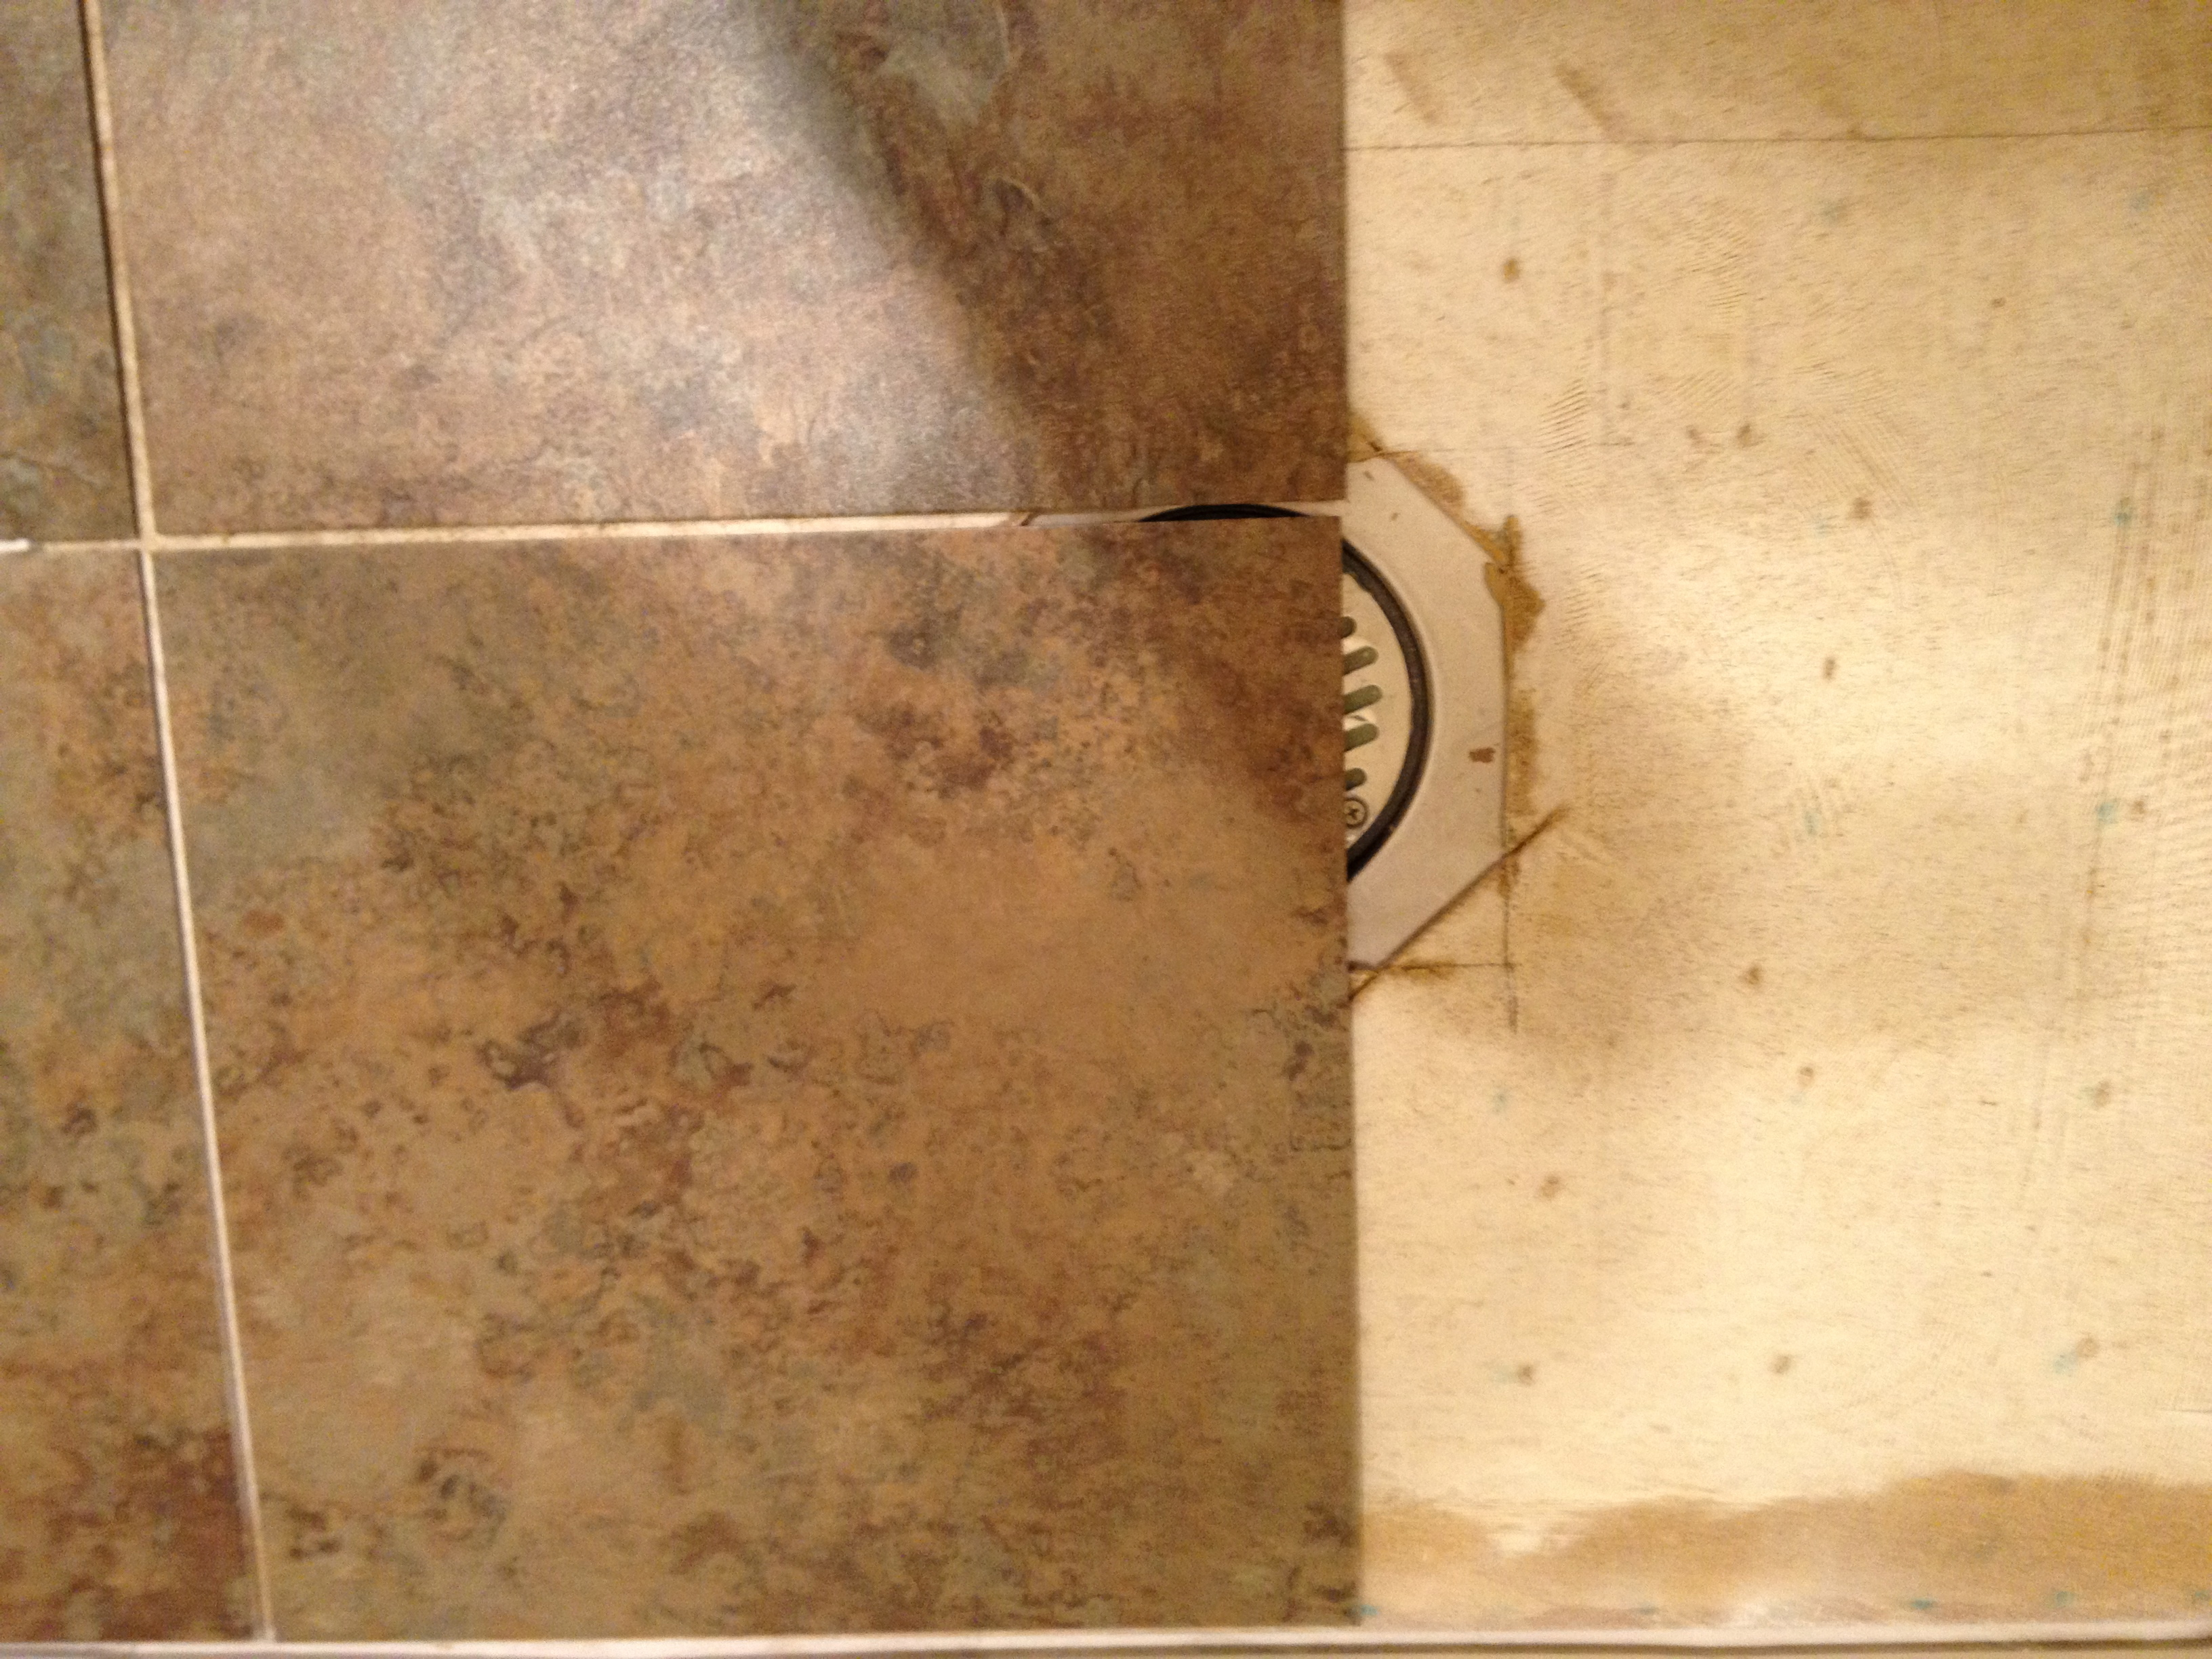 I need some tips and tricks for installing my vinyl tile around a drain and subfloor image tile laying over drain dailygadgetfo Choice Image